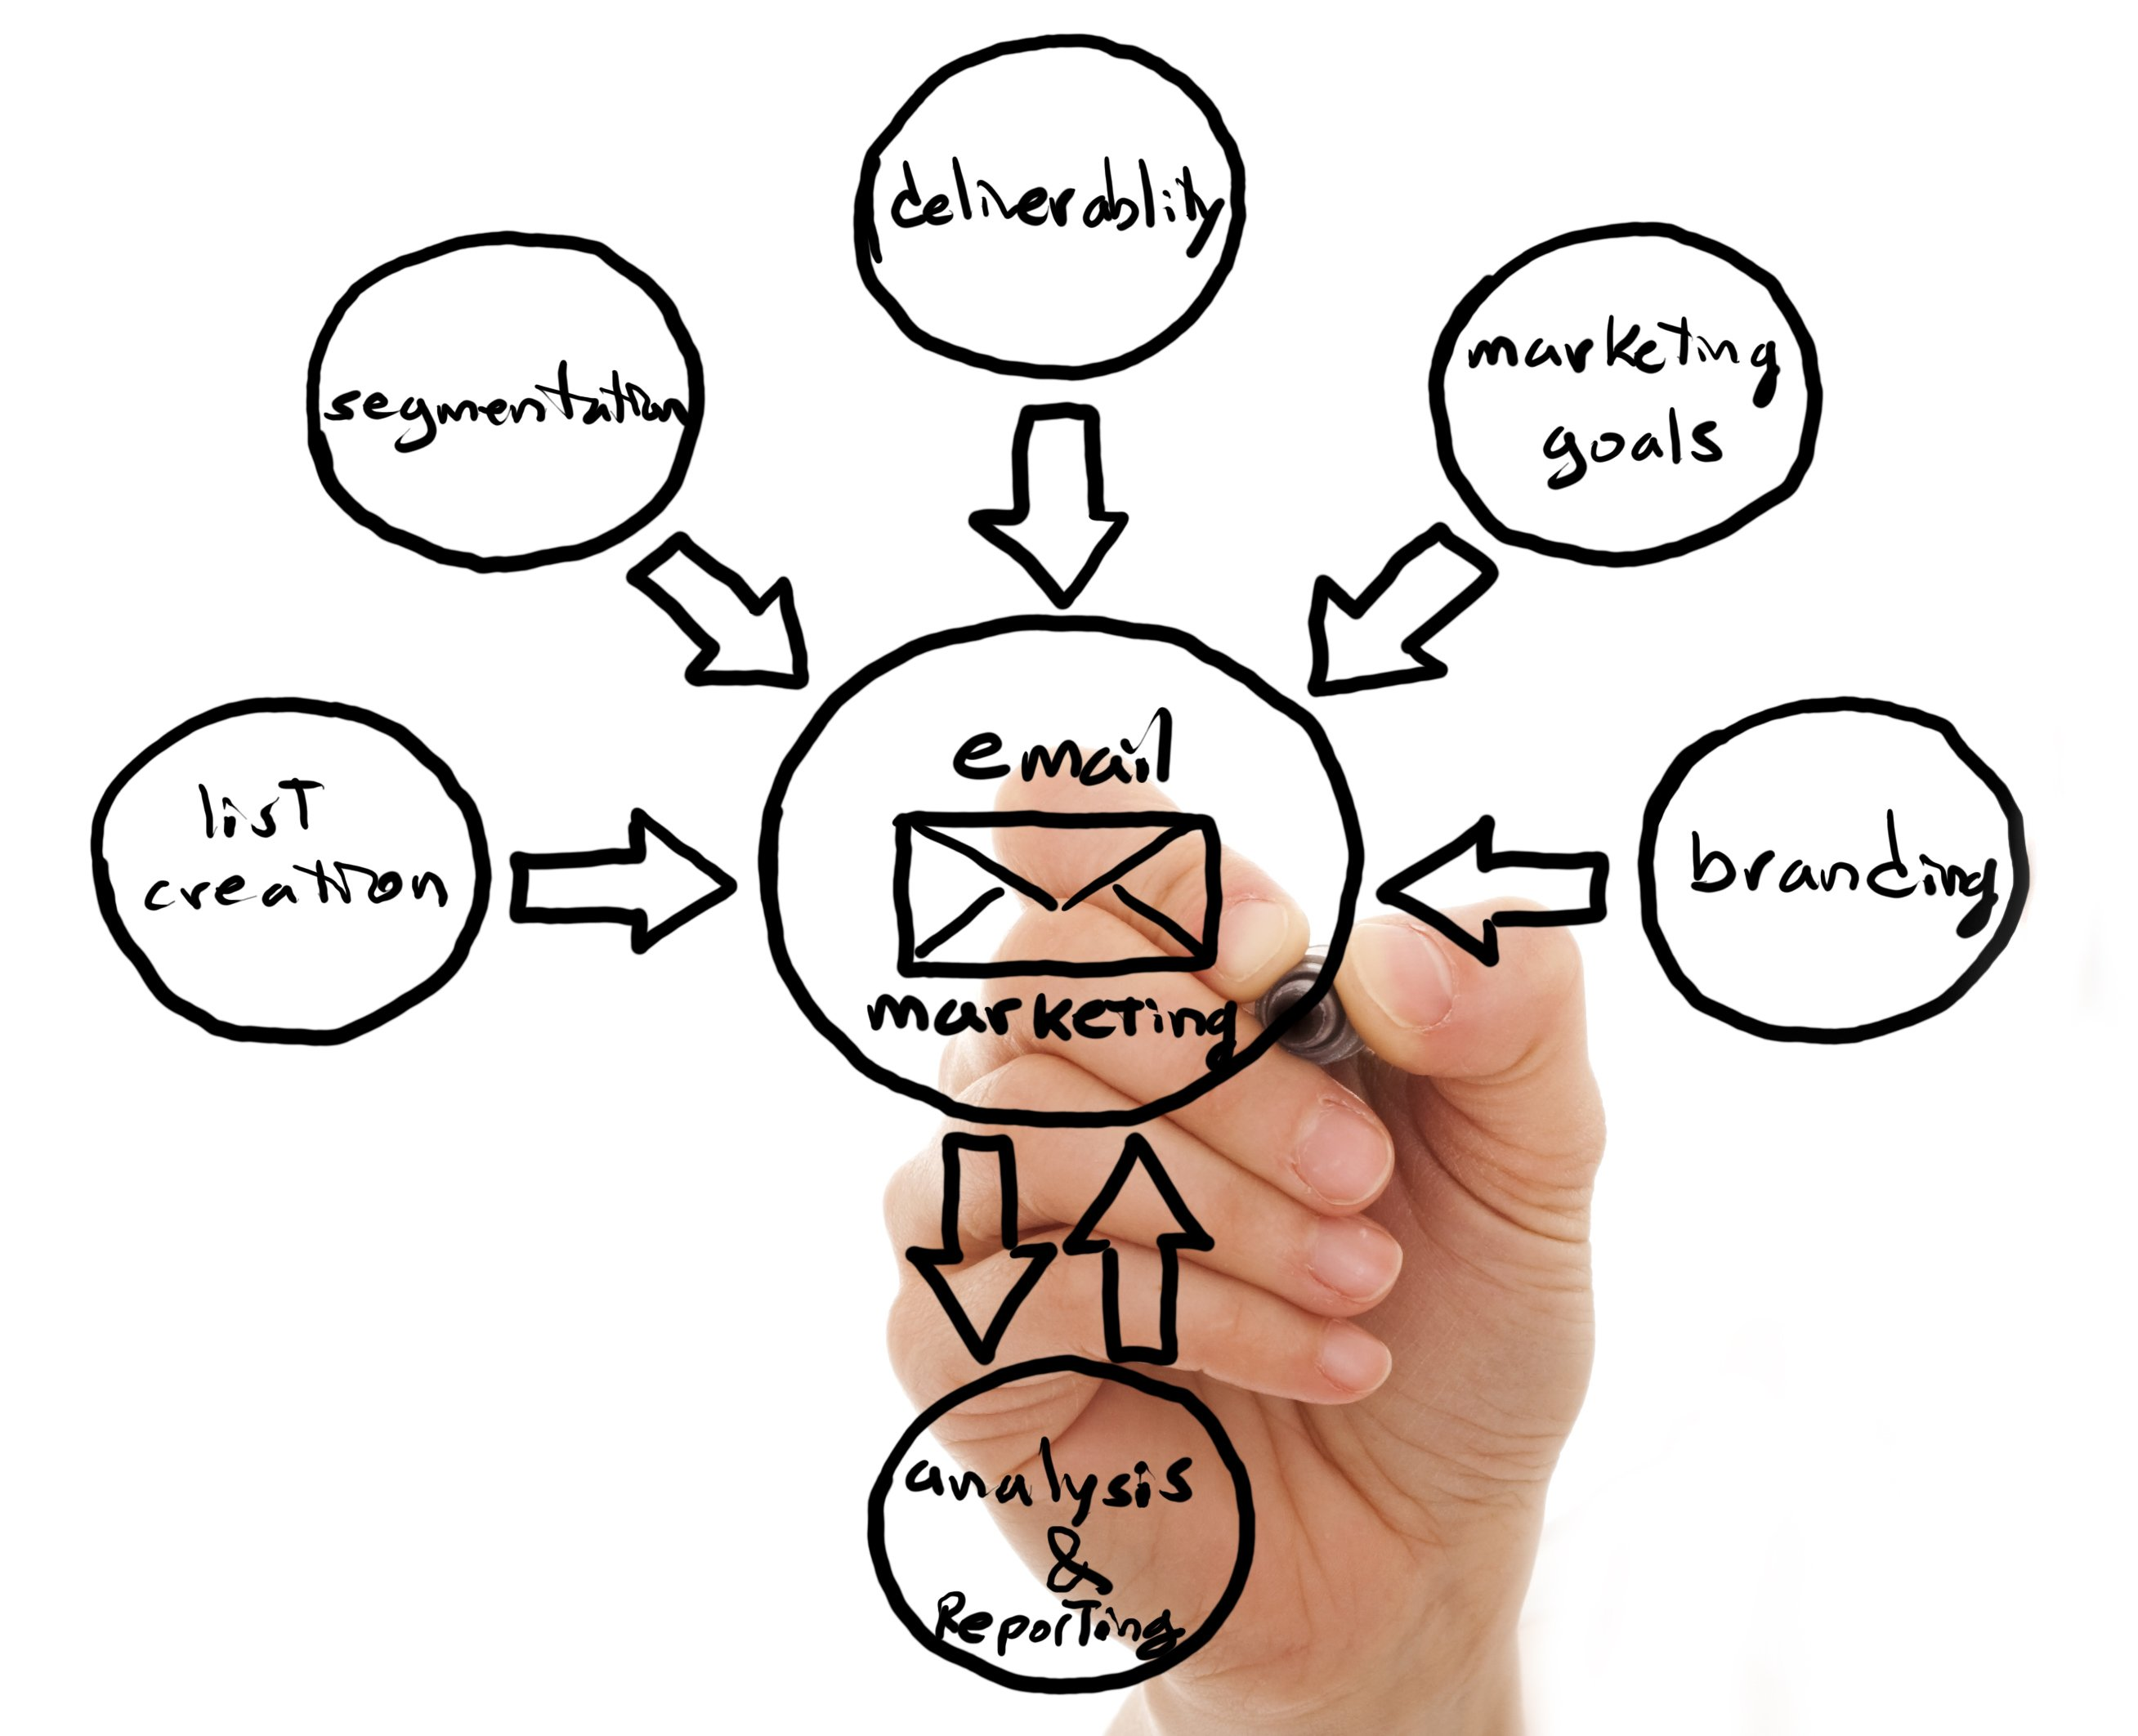 5 Tips to Help You Avoid Email Fatigue with Your Direct Marketing